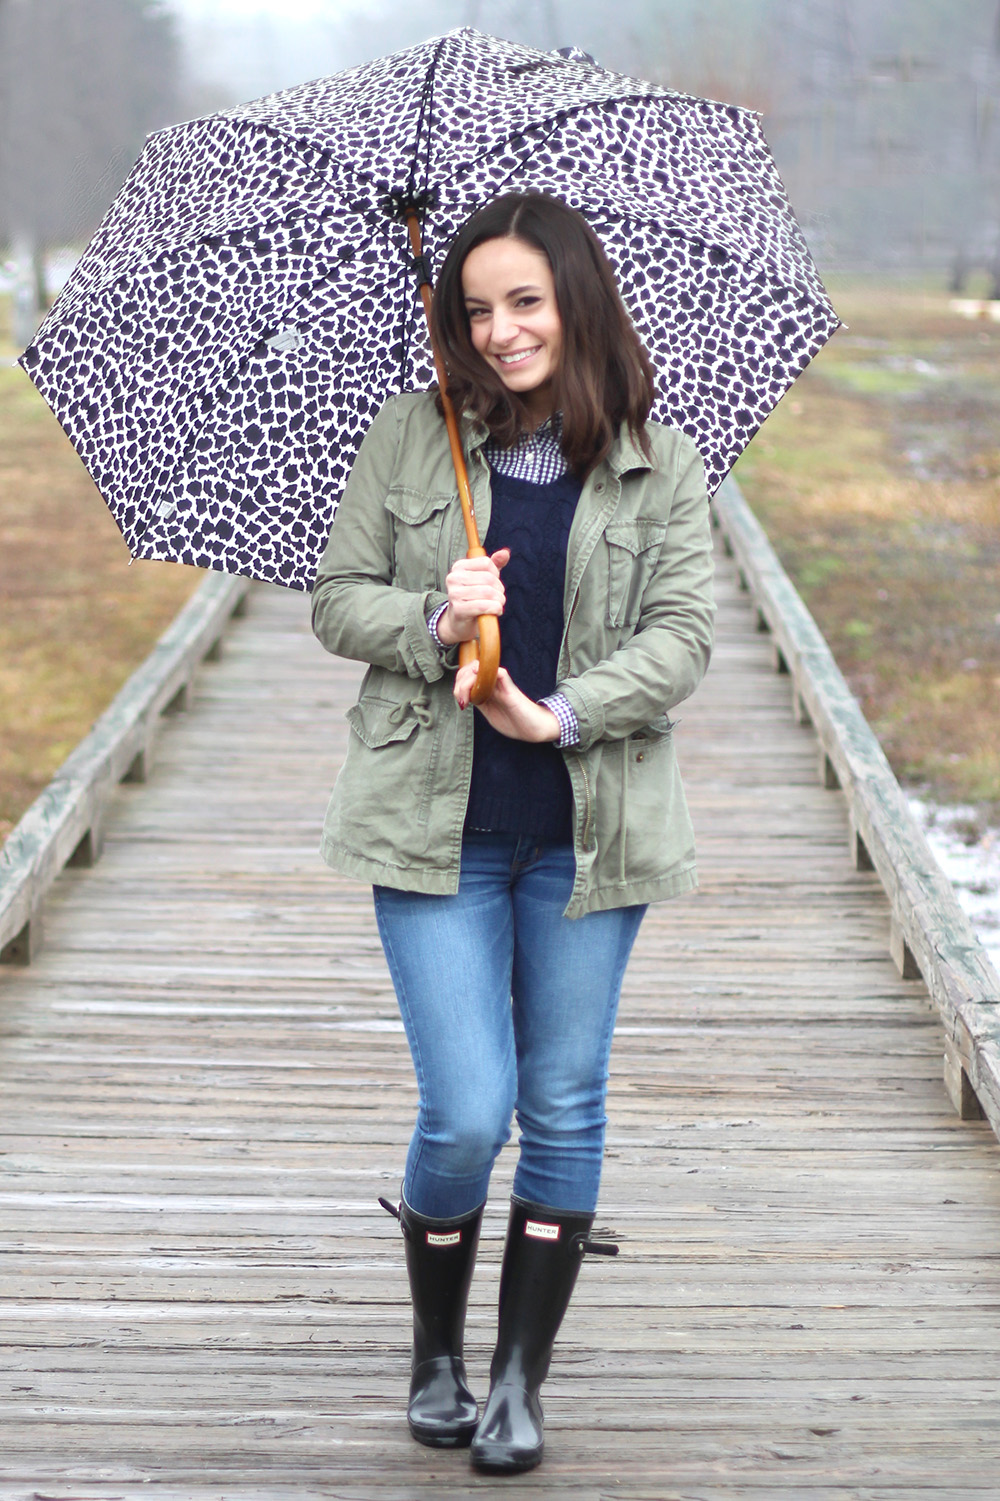 gallerynova.se Te1n1w77214-0- 11 How to wear rain boots | rainy day outfit | pumps and push-ups